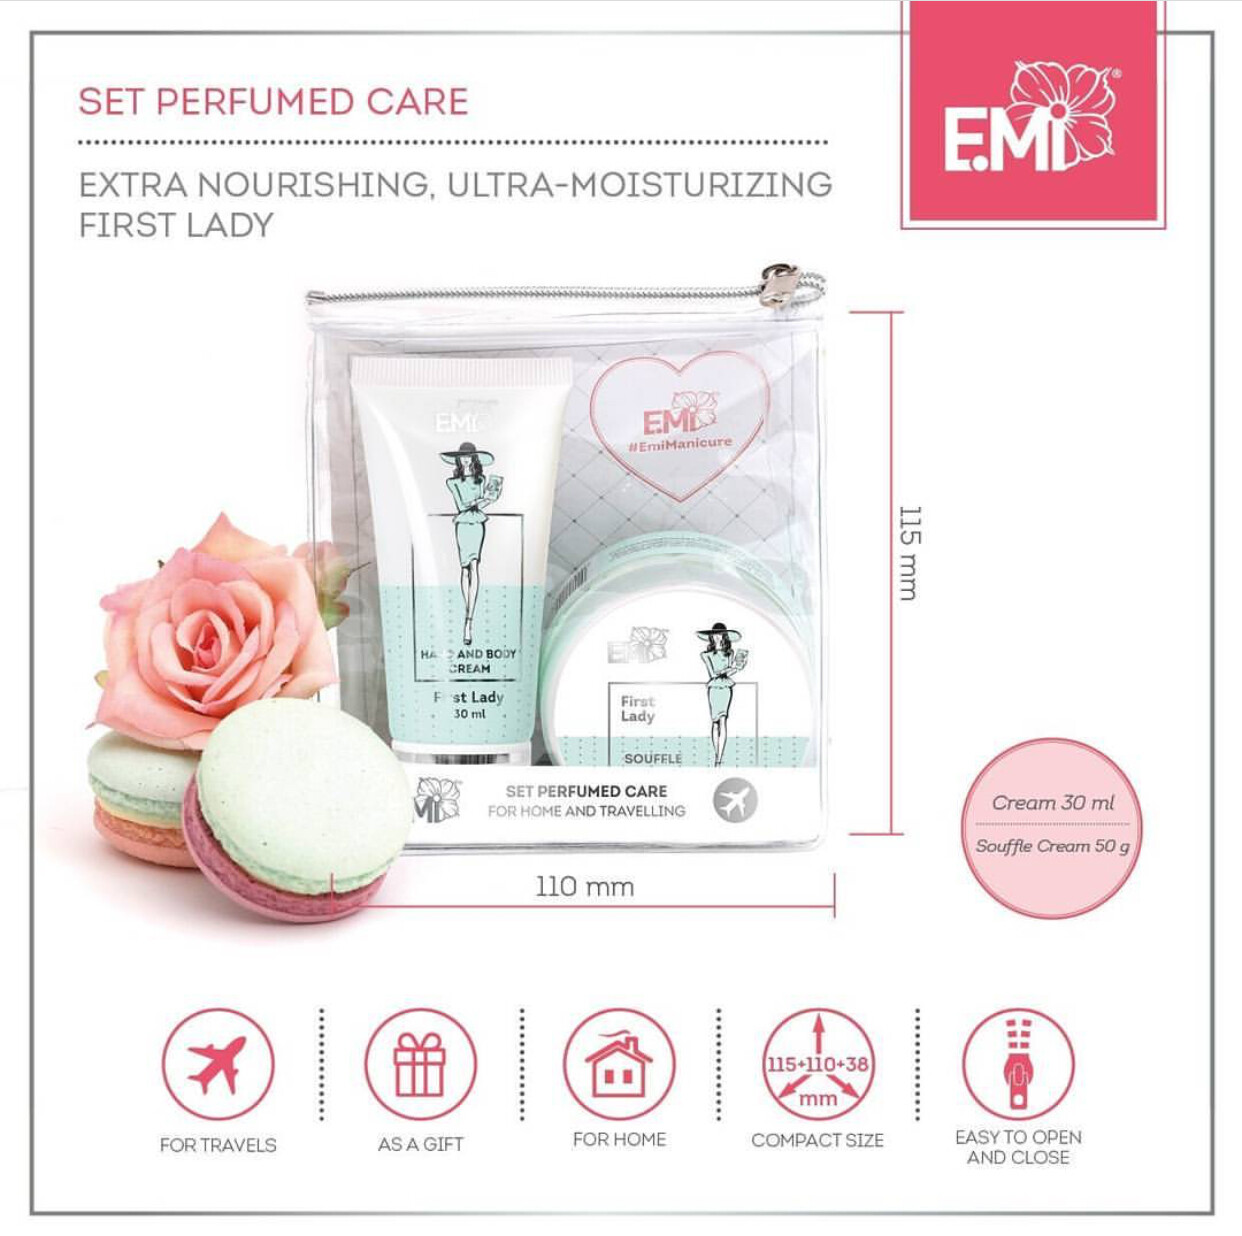 Set Perfumed Care. Extra-Nourishment and Ultra-Moisturizing First Lady